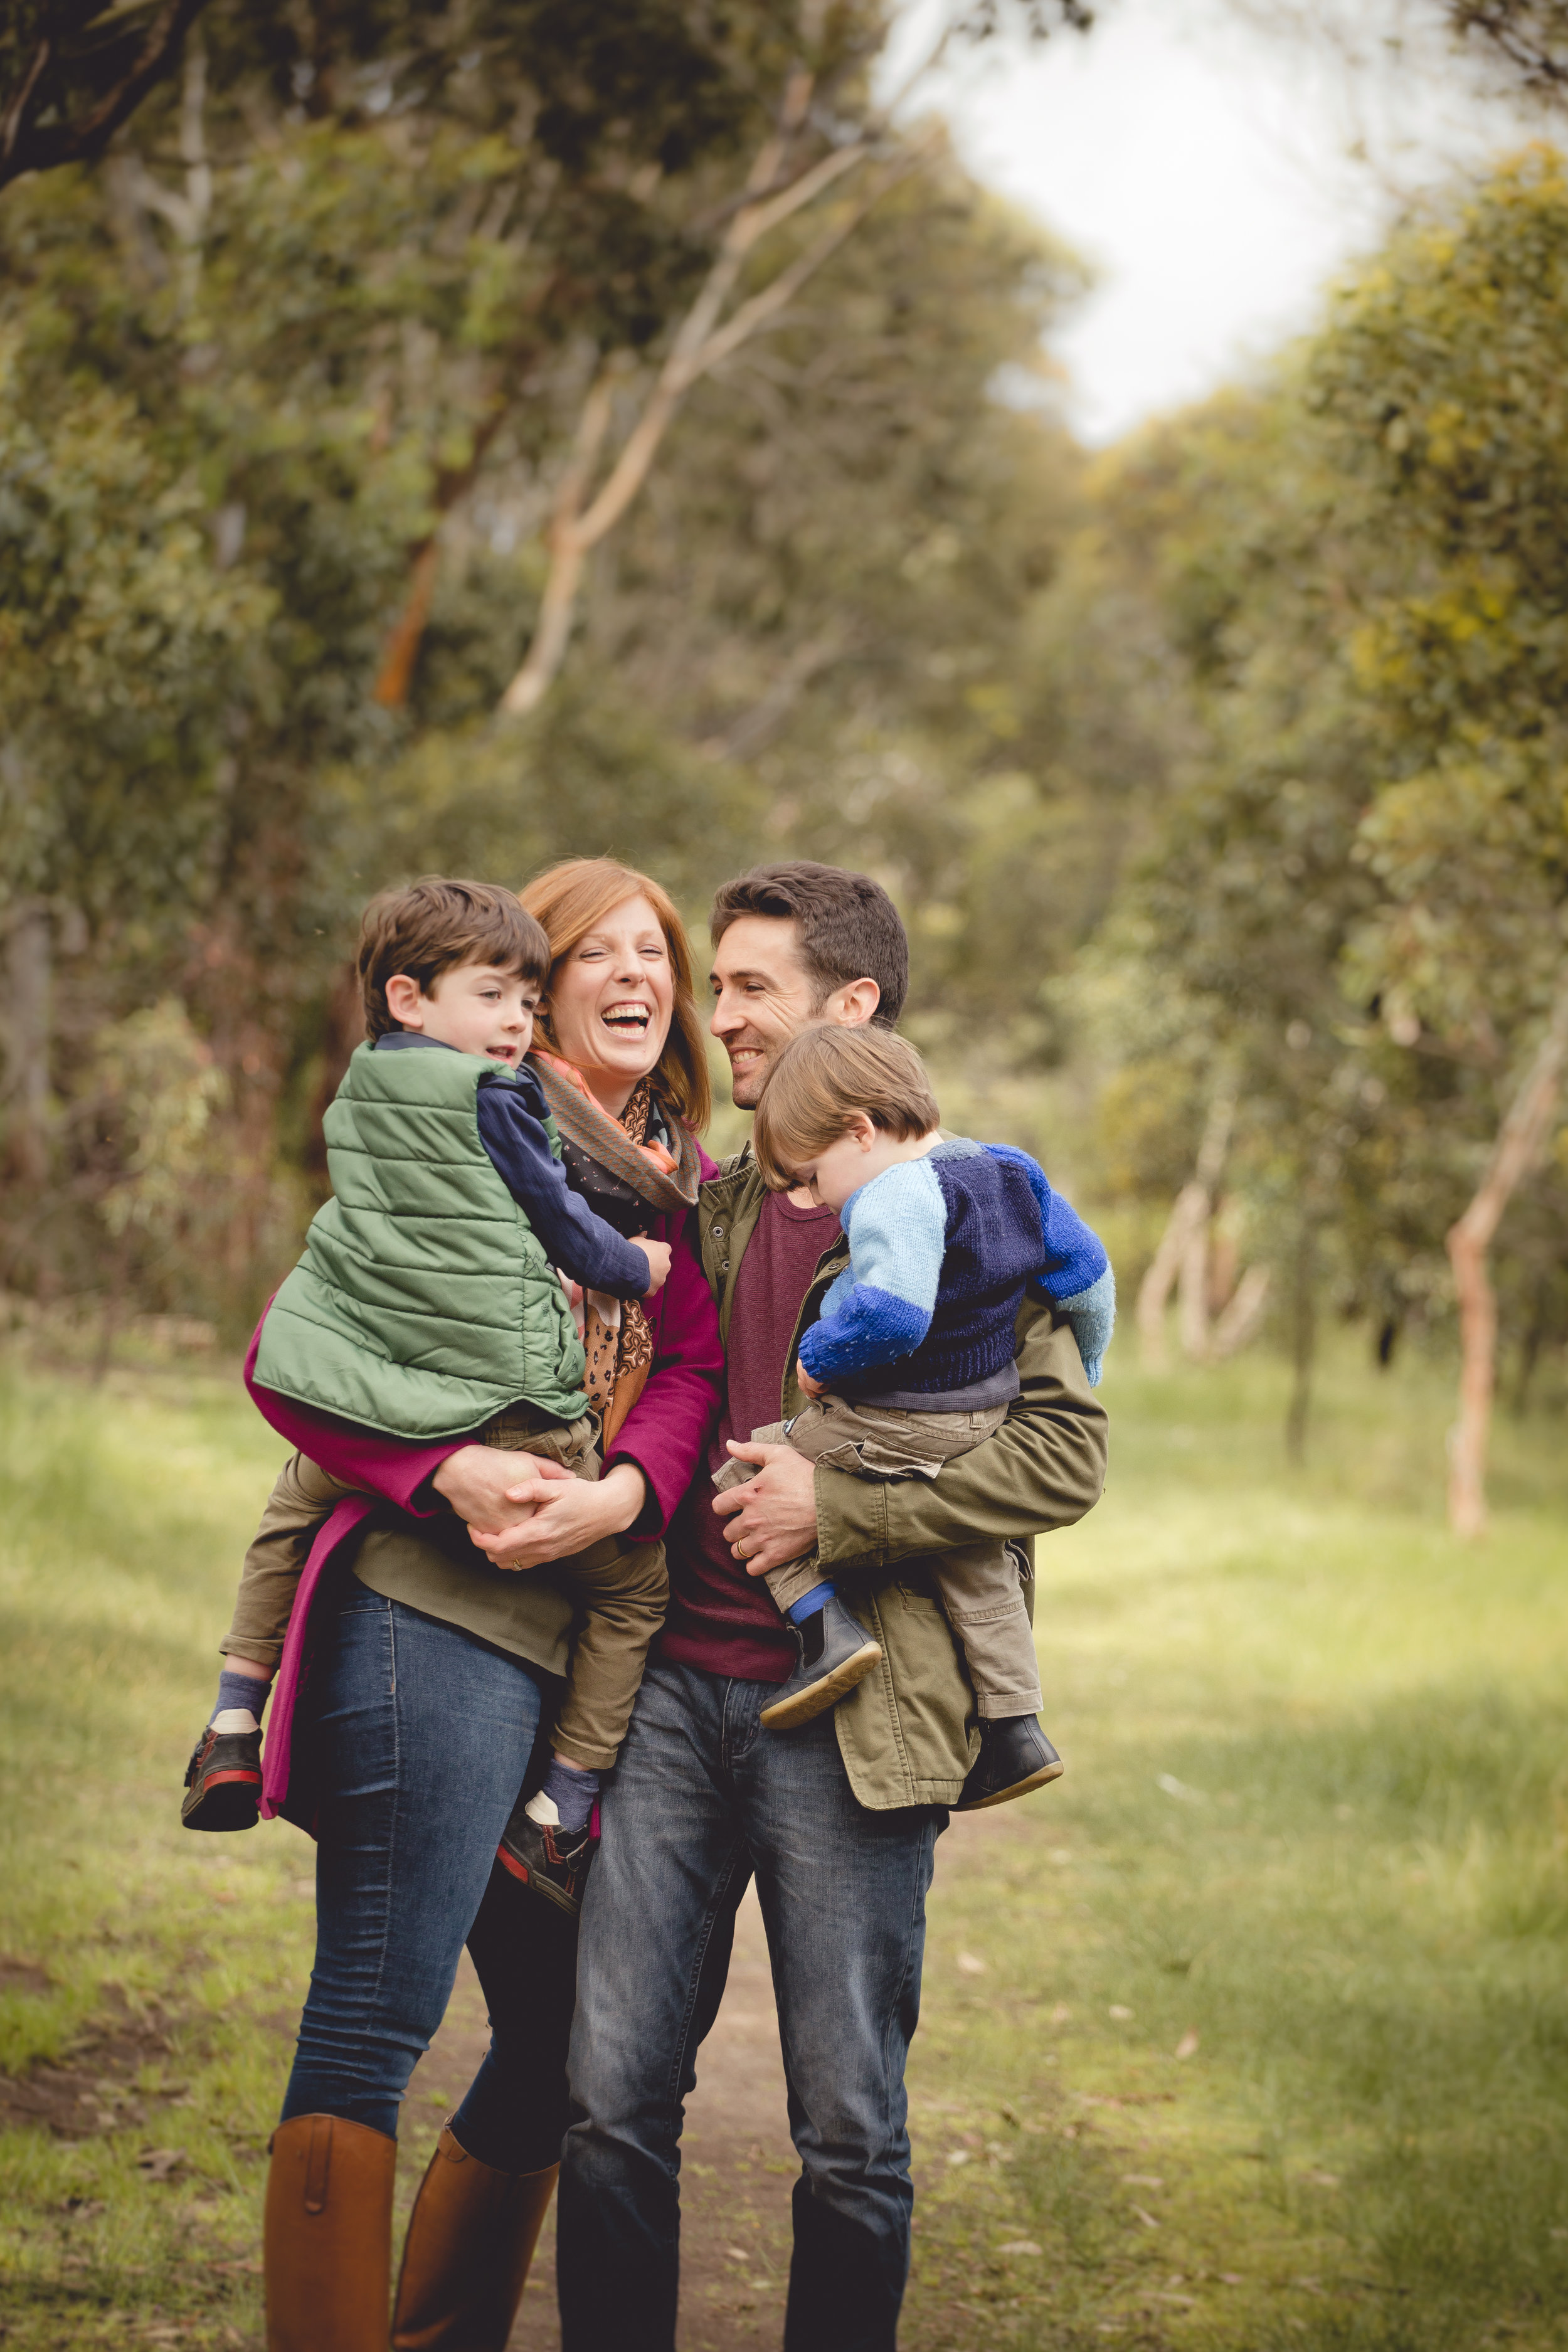 Family Sessions - Family sessions include your immediate family and images of your child/ren individually, with mum and dad separately, and any other combinations you wish for.I have some beautiful locations around the Bellarine Peninsula, Geelong and surrounds that I can recommend, whether you prefer a beach or bush look.All bookings receive a helpful PDF What to Wear Guide and plenty of session tips to help you prepare.